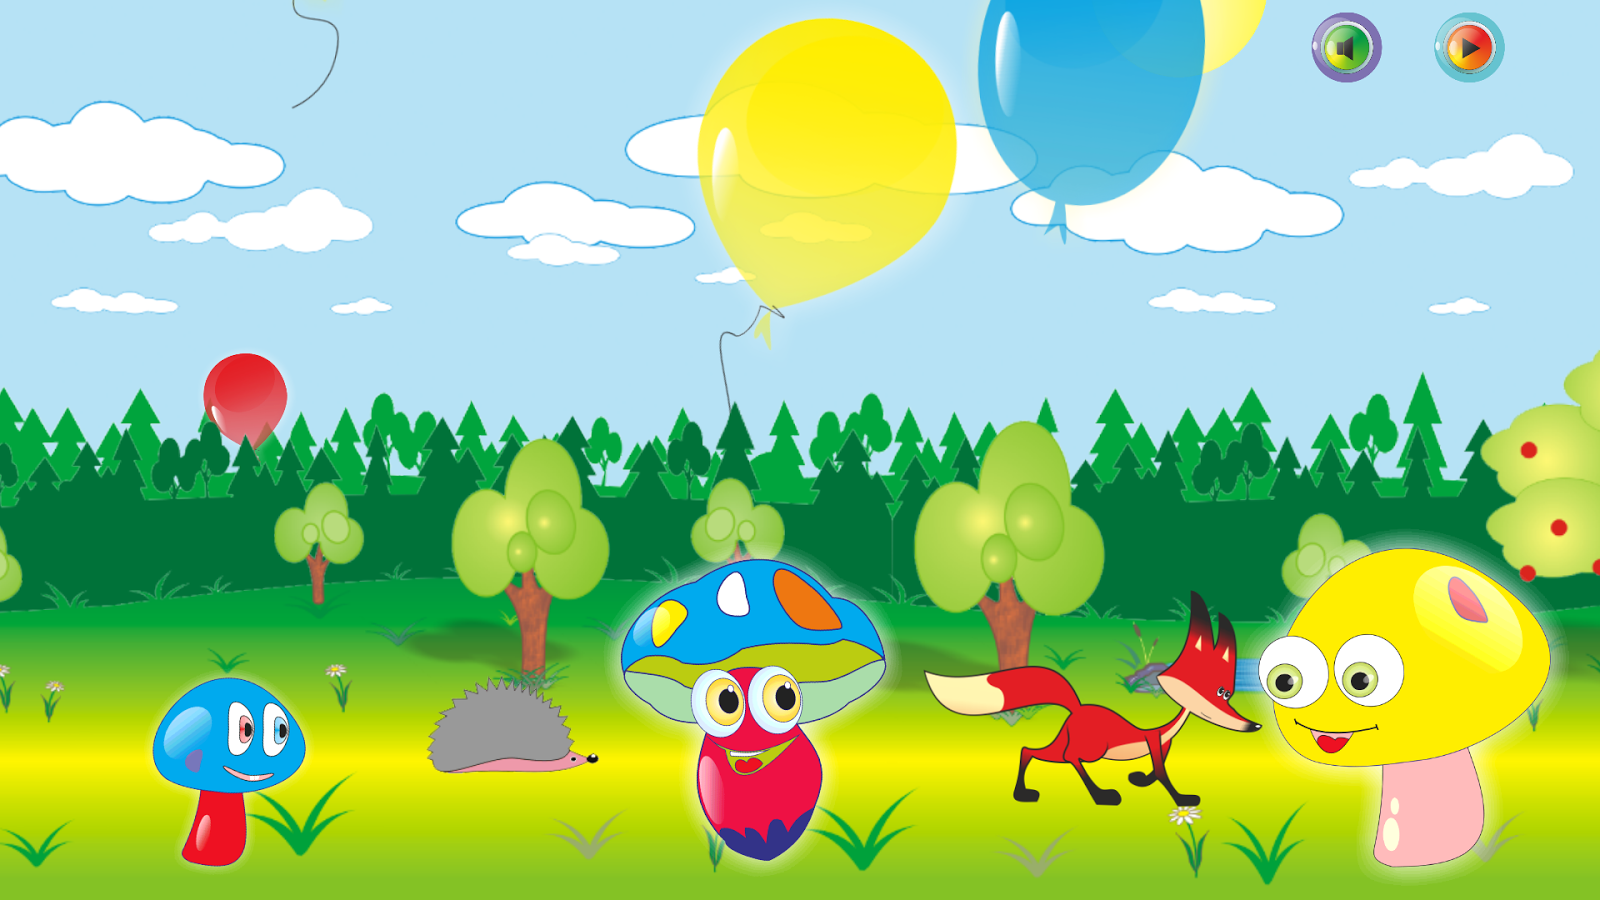 Toy Balloons Funny Mushrooms Android Apps On Google Play